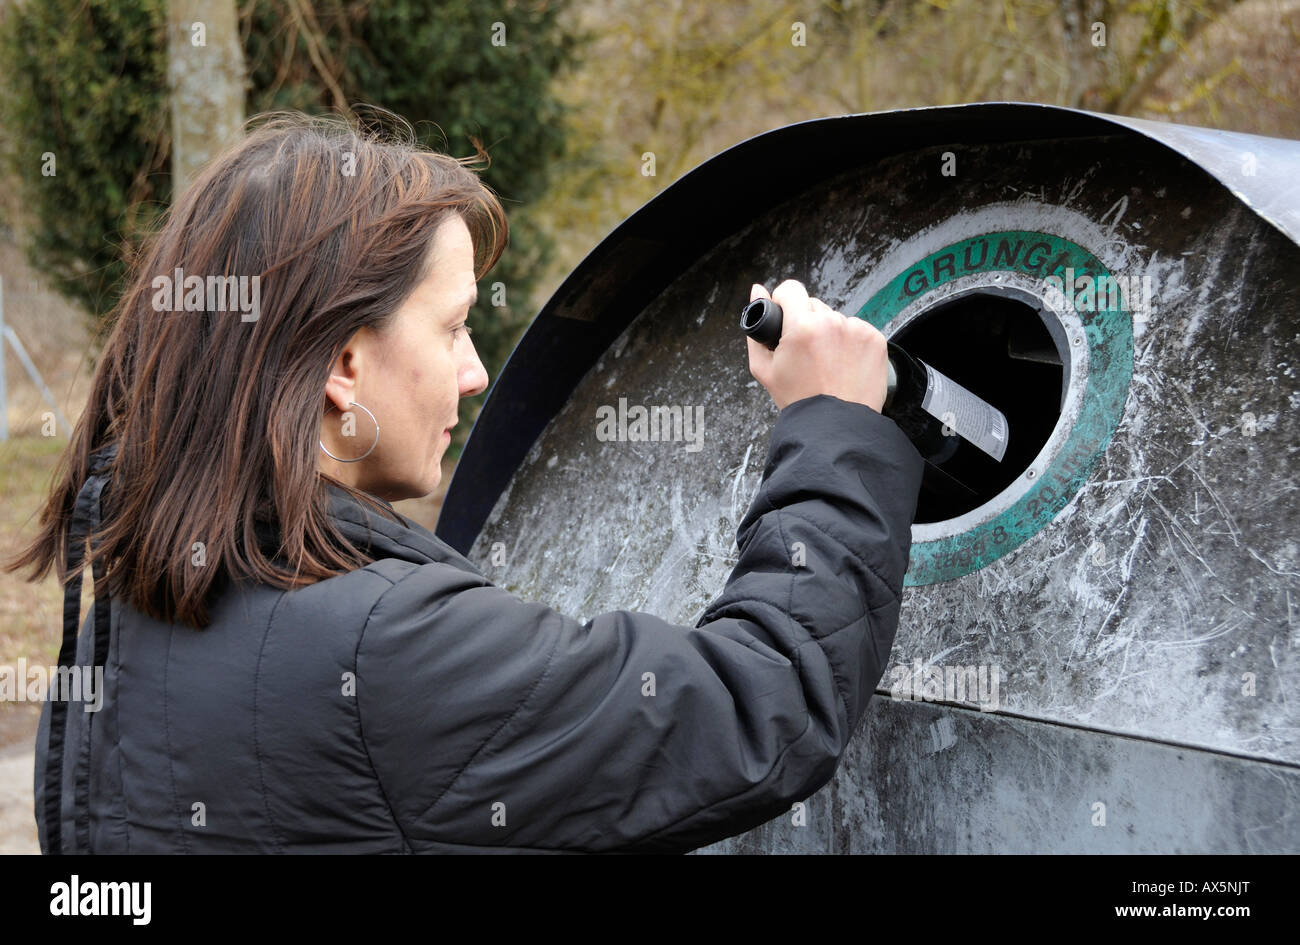 Woman is throwing a bottle in a German bottle bank (Glascontainer) - Stock Image